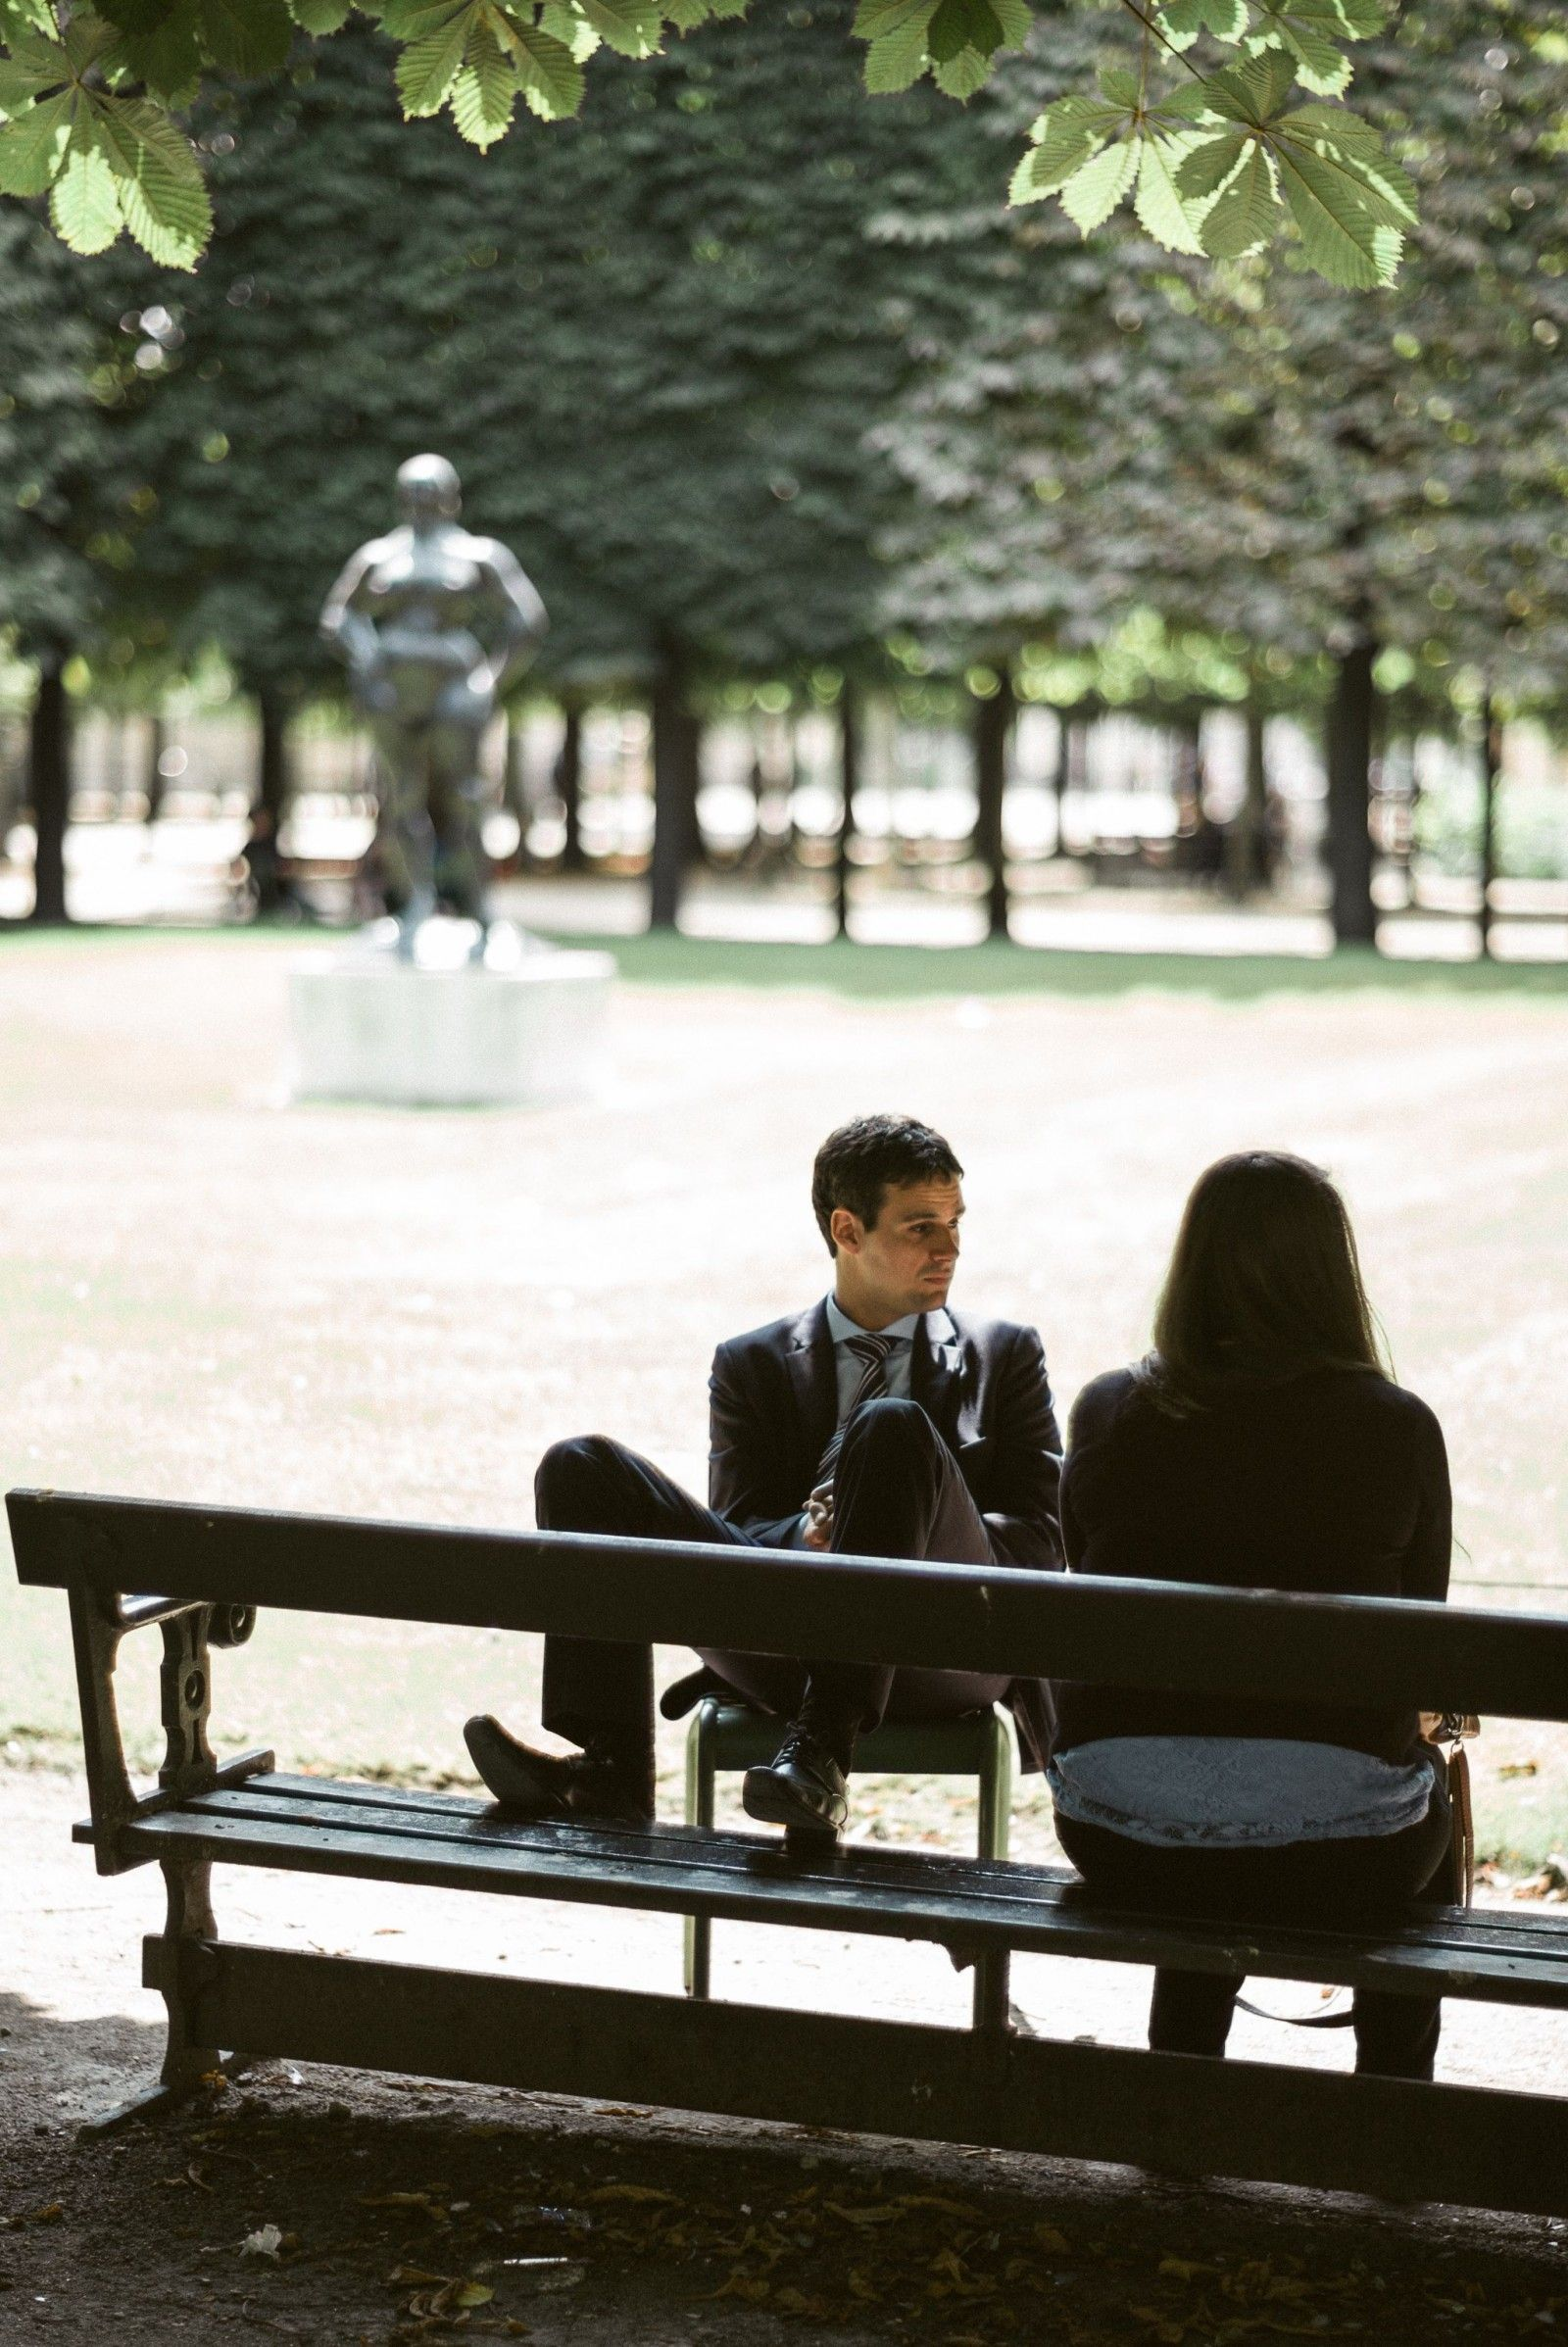 A young man together with a young woman in the park.